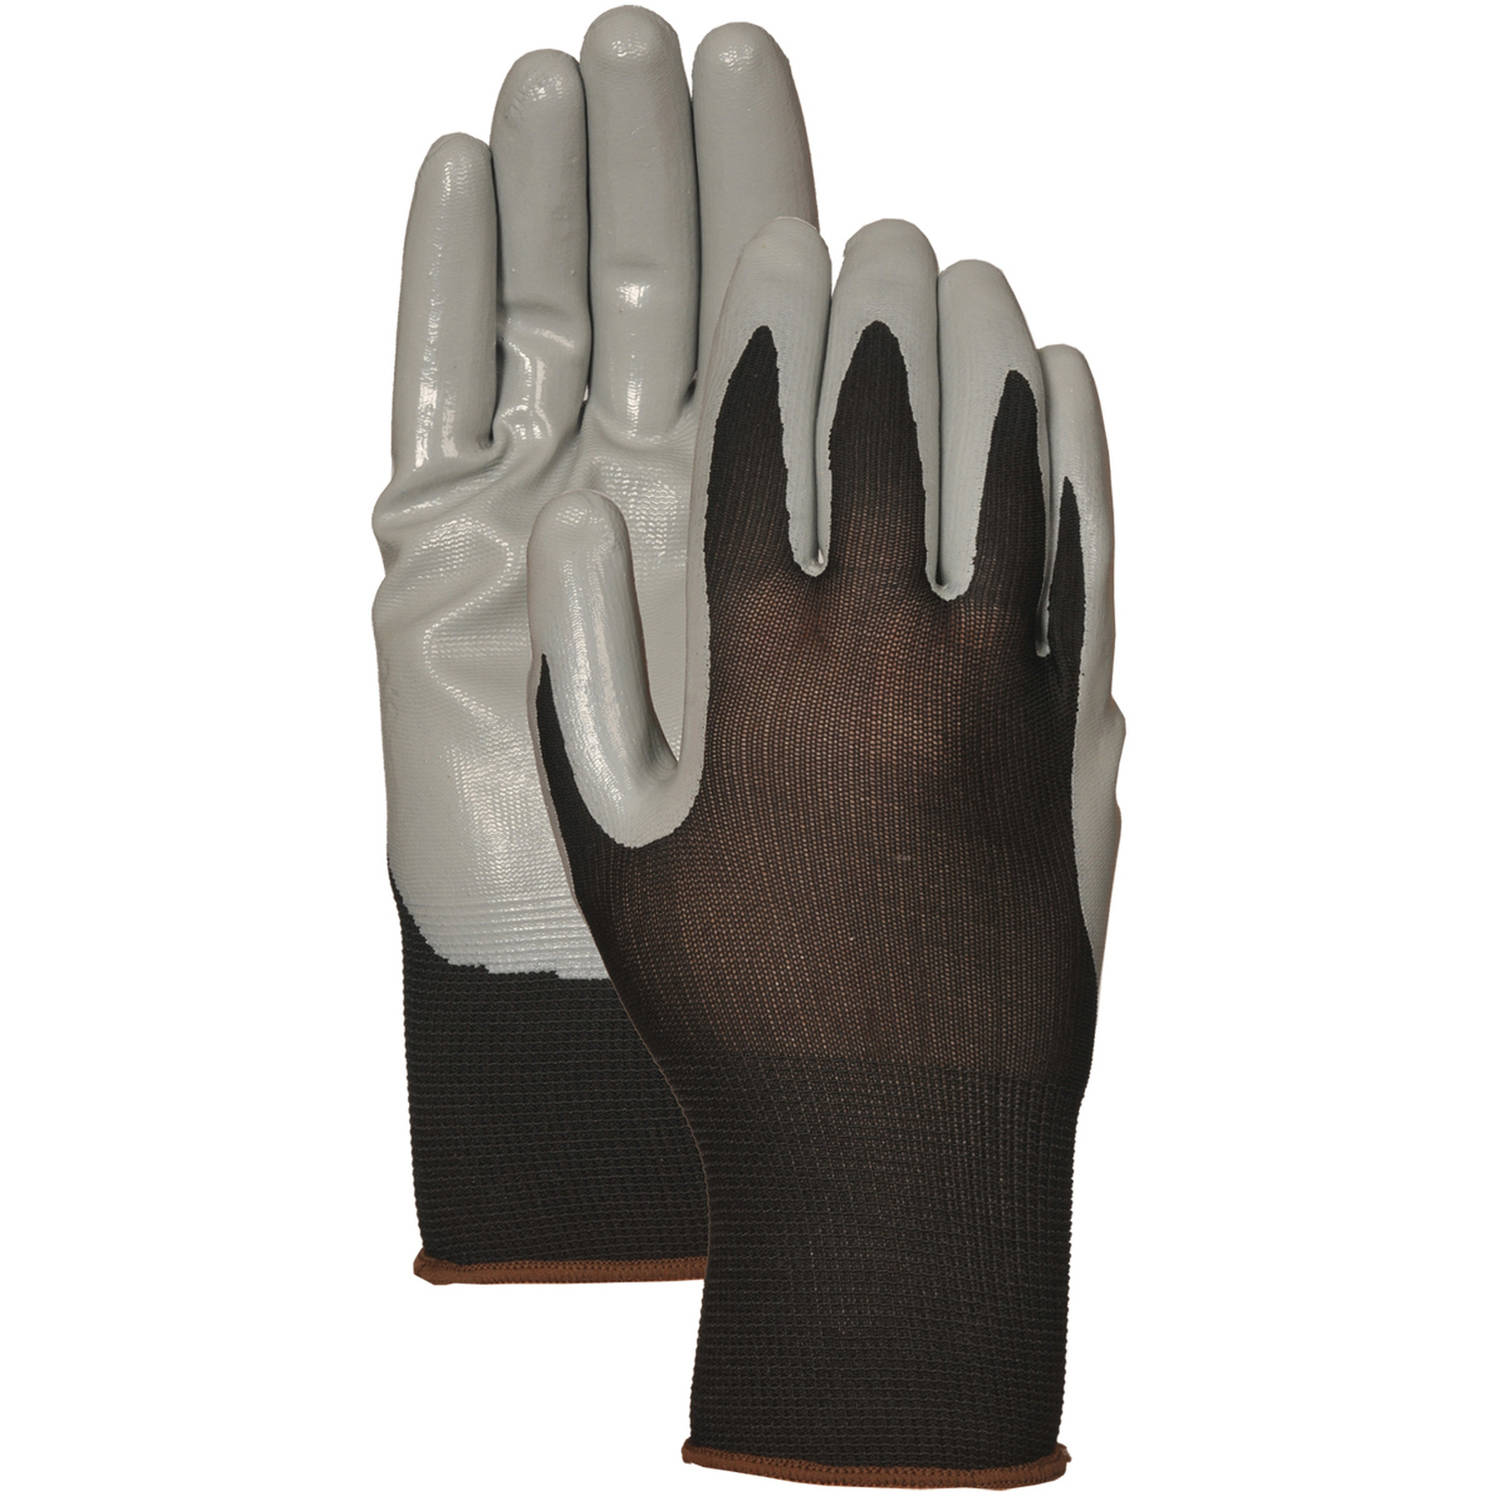 Bellingham Glove C3701XL Extra Large Gray Nitrile Palm Gloves